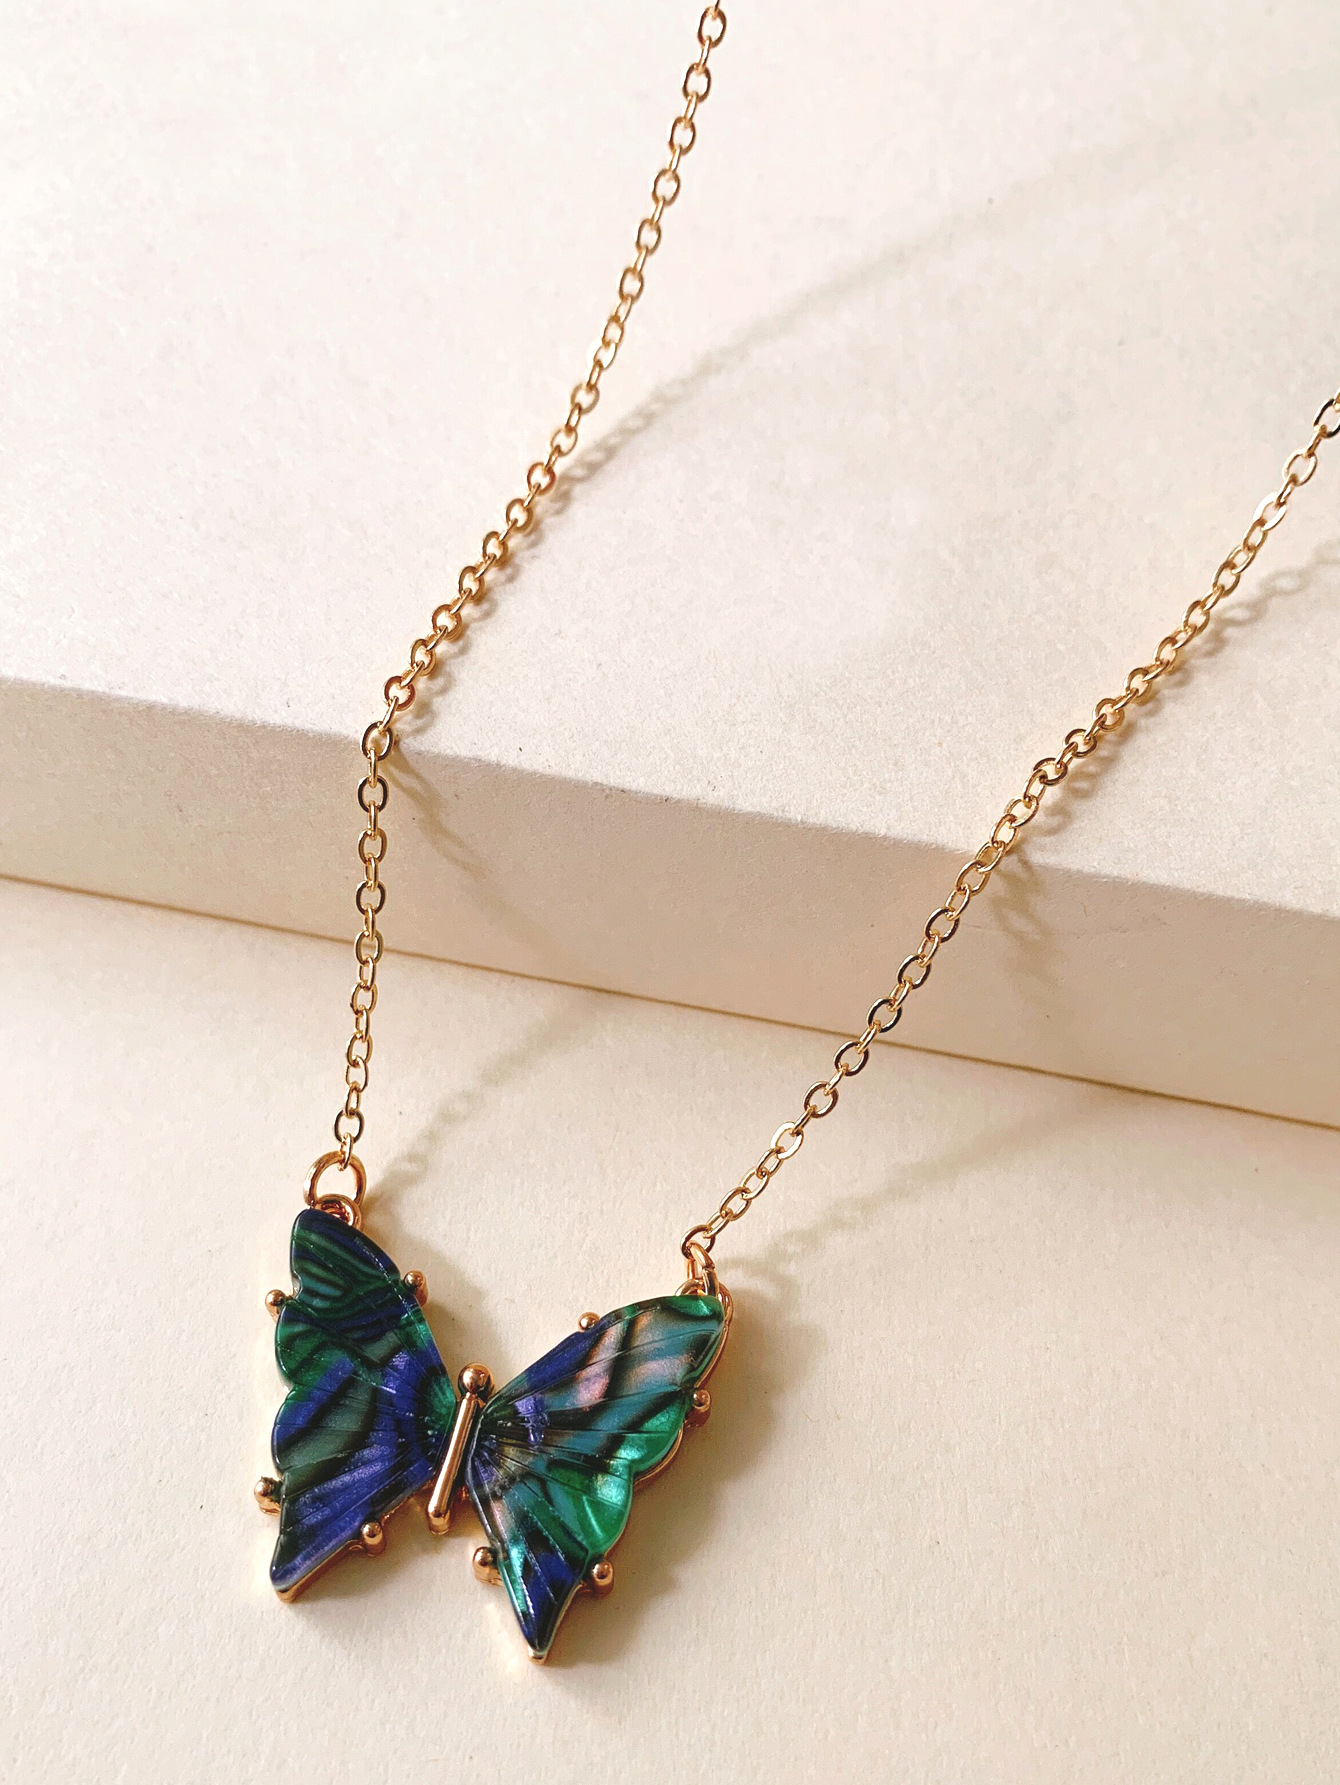 new retro necklace butterfly acrylic long sweater necklace with jewelry set accessories wholesale nihaojewelry NHJJ222379